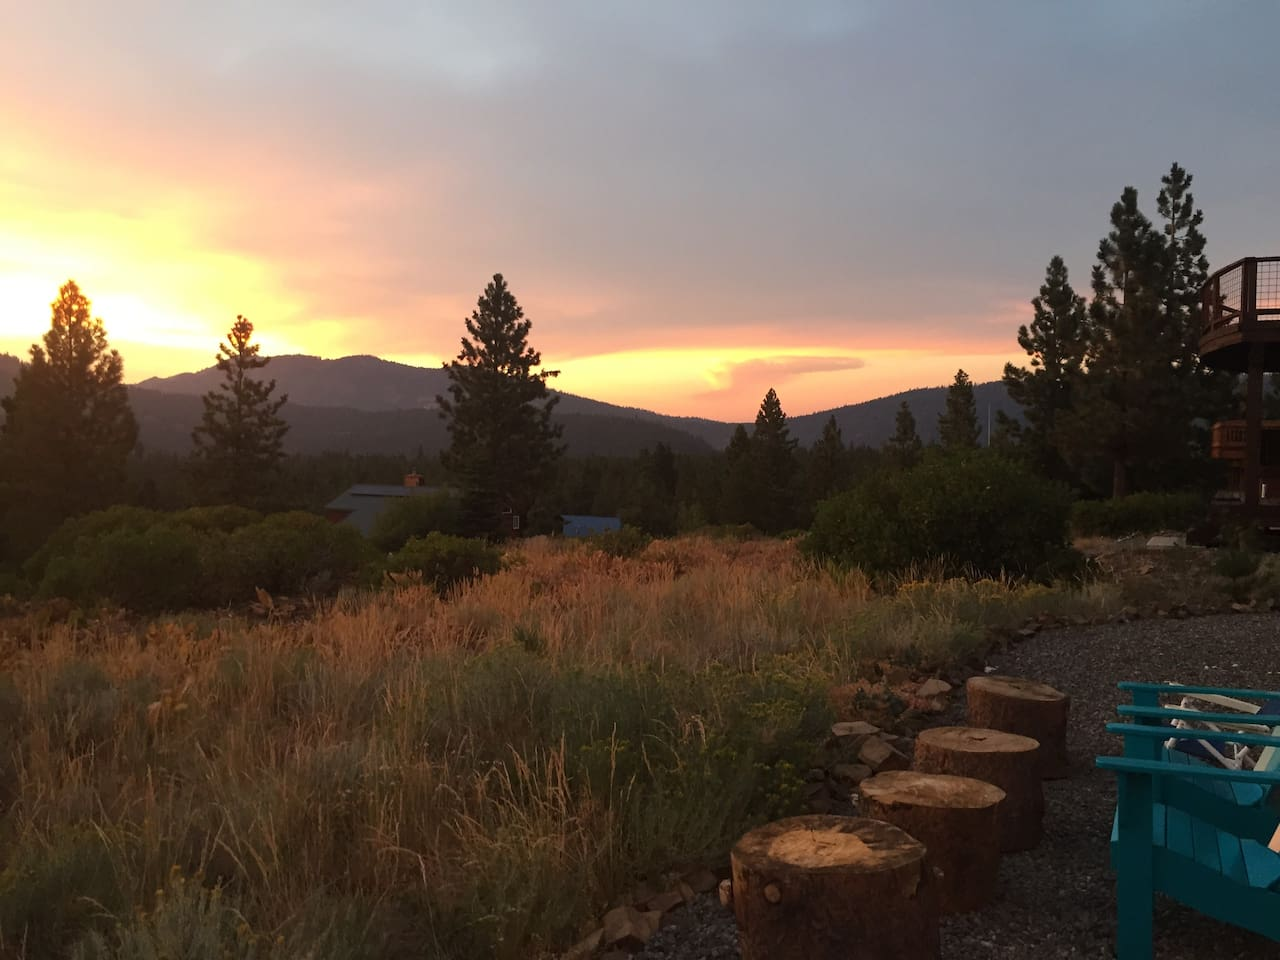 relax in the backyard and watch the sunset and shooting stars